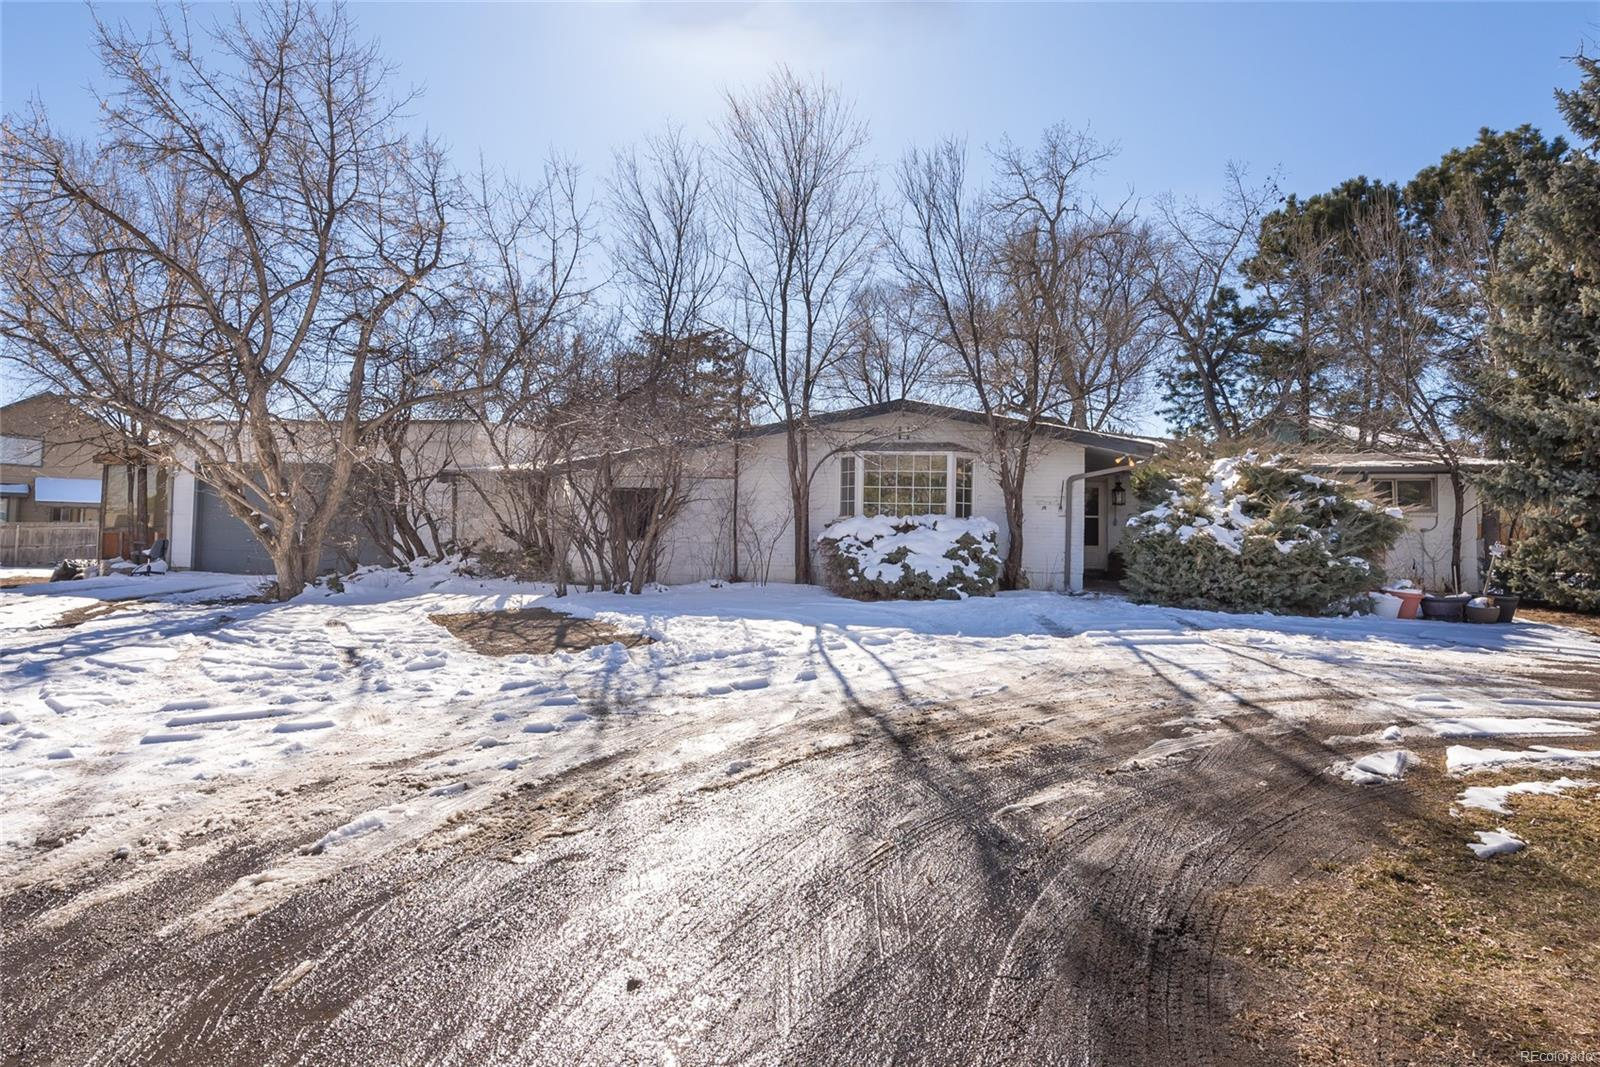 fort littleton dating Sale date 04/18 cap rate 80202 sale price  91-191 west mineral ave,  littleton, co  university center 2211-2325 s college ave, fort collins, co.